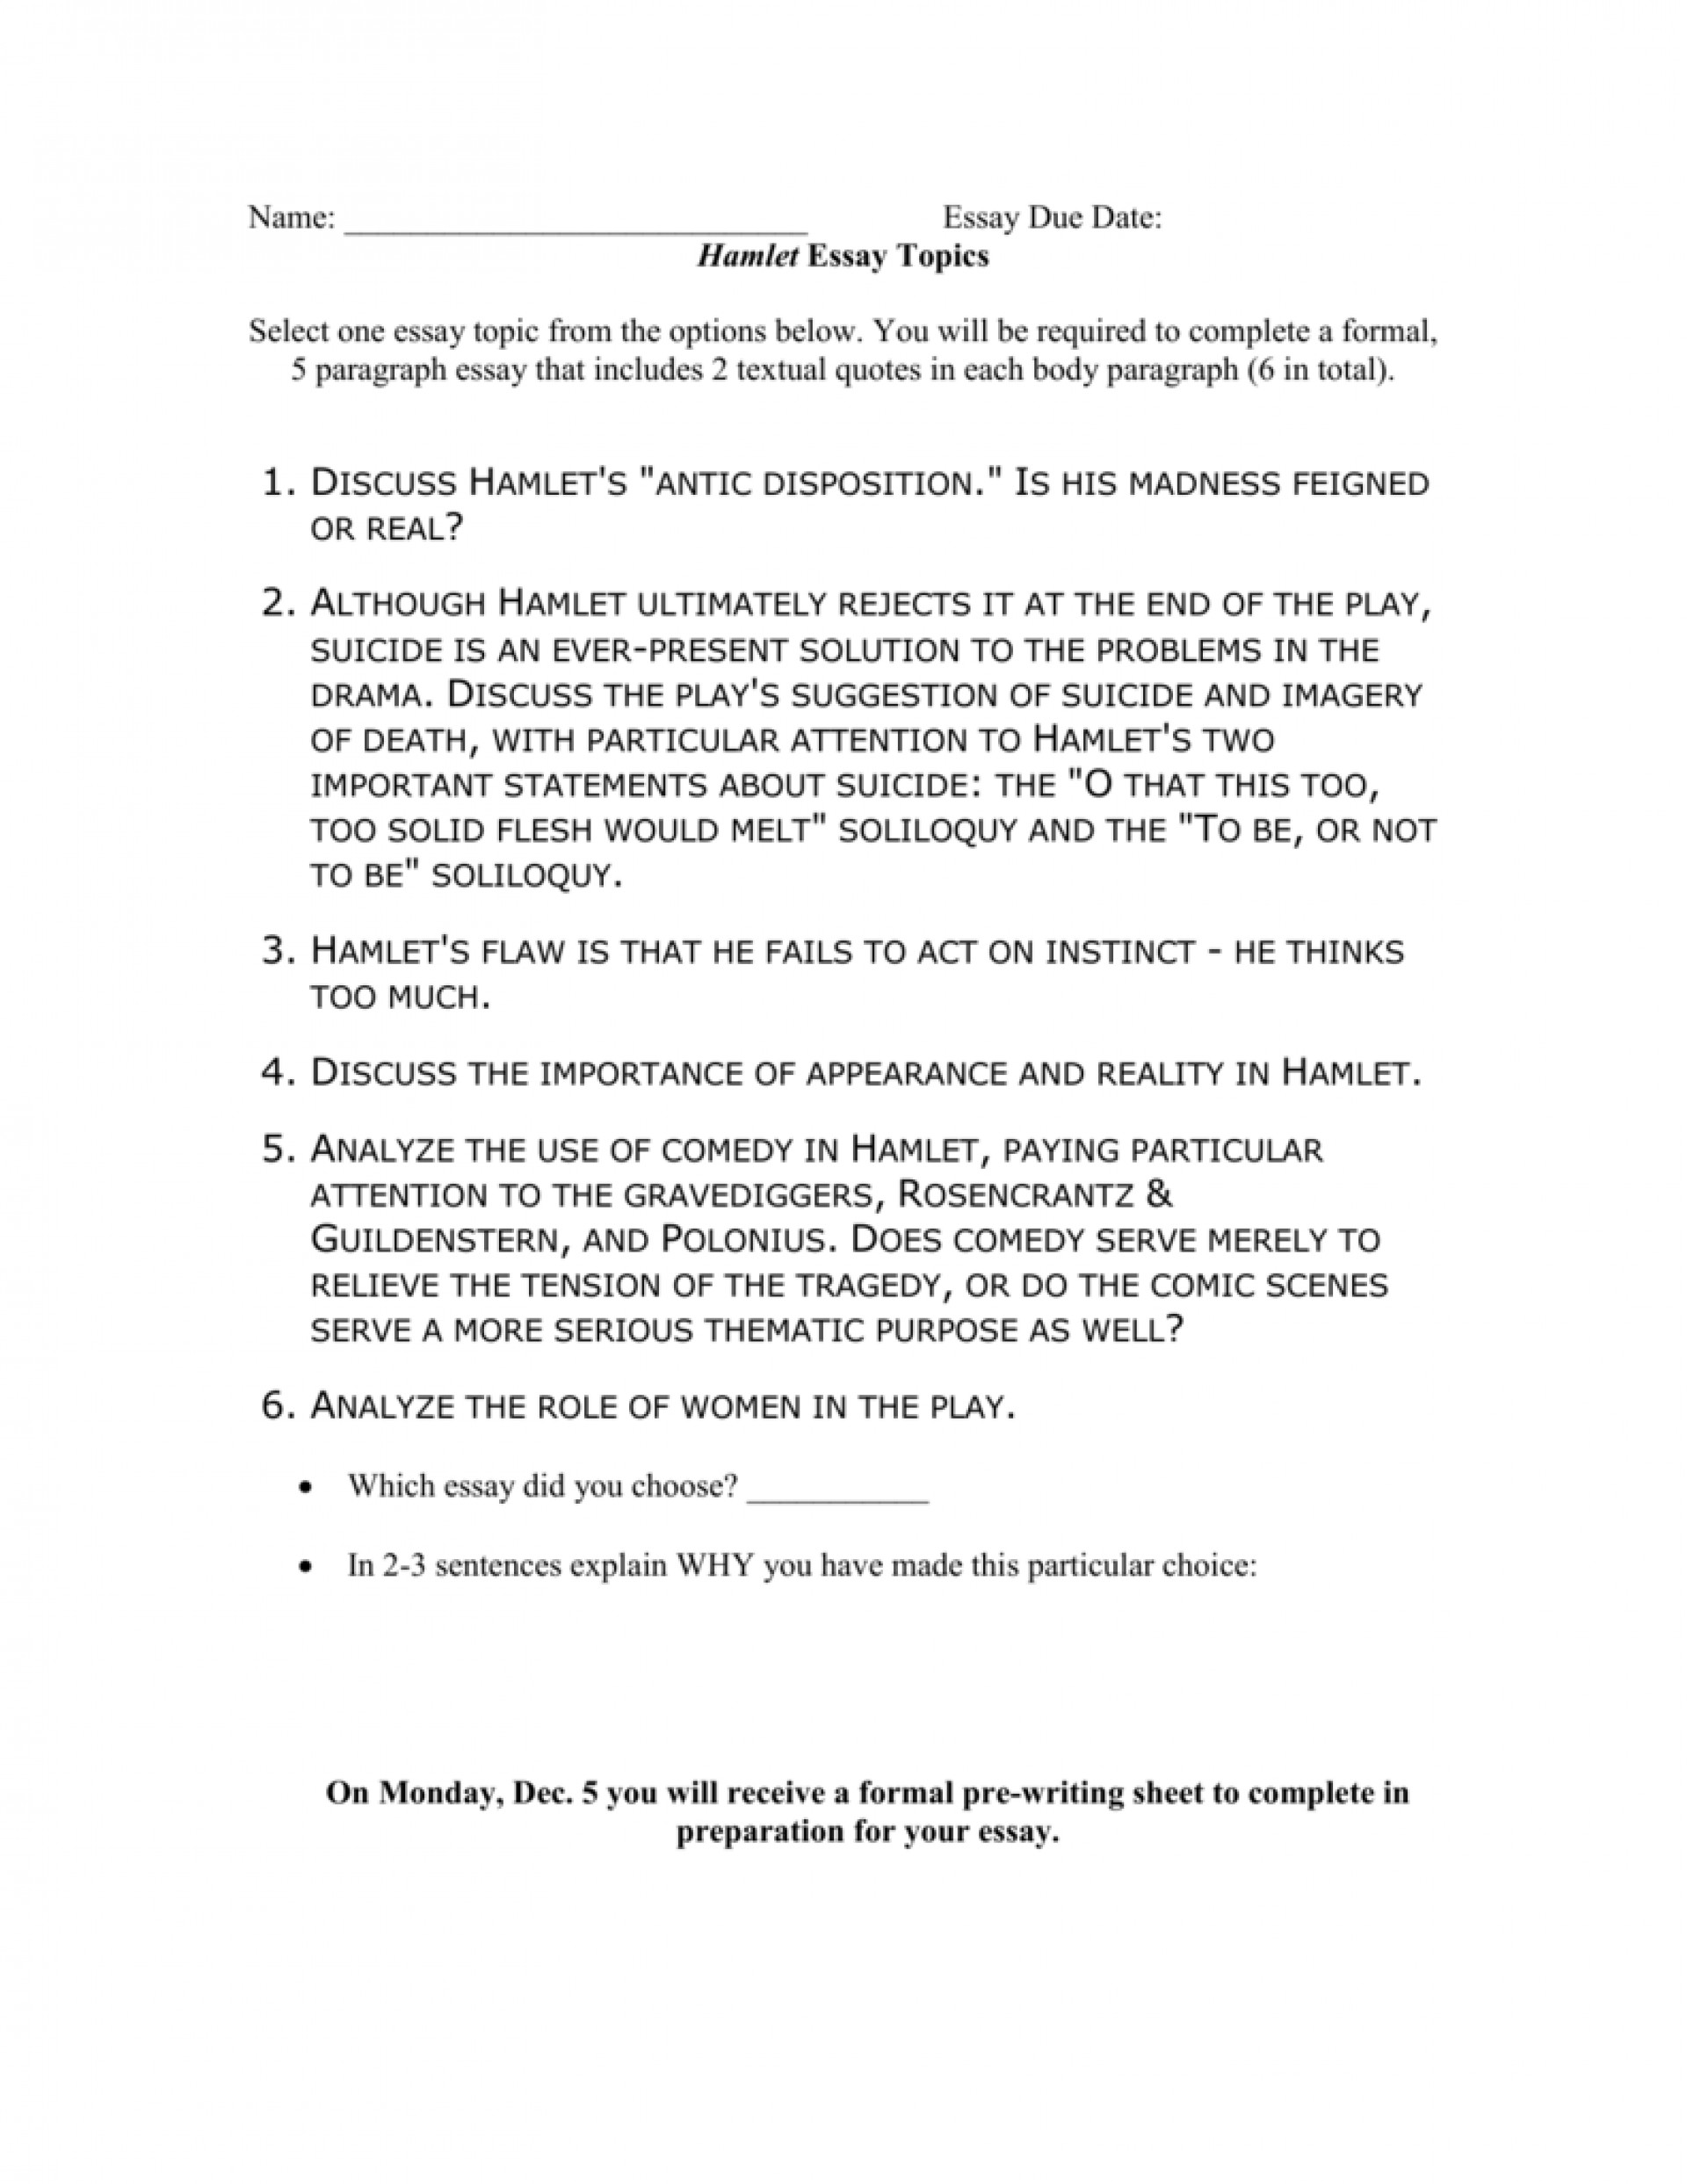 001 008023648 1 Essay Example Hamlet Rare Topics High School And Answers Ap Literature Prompt 1920